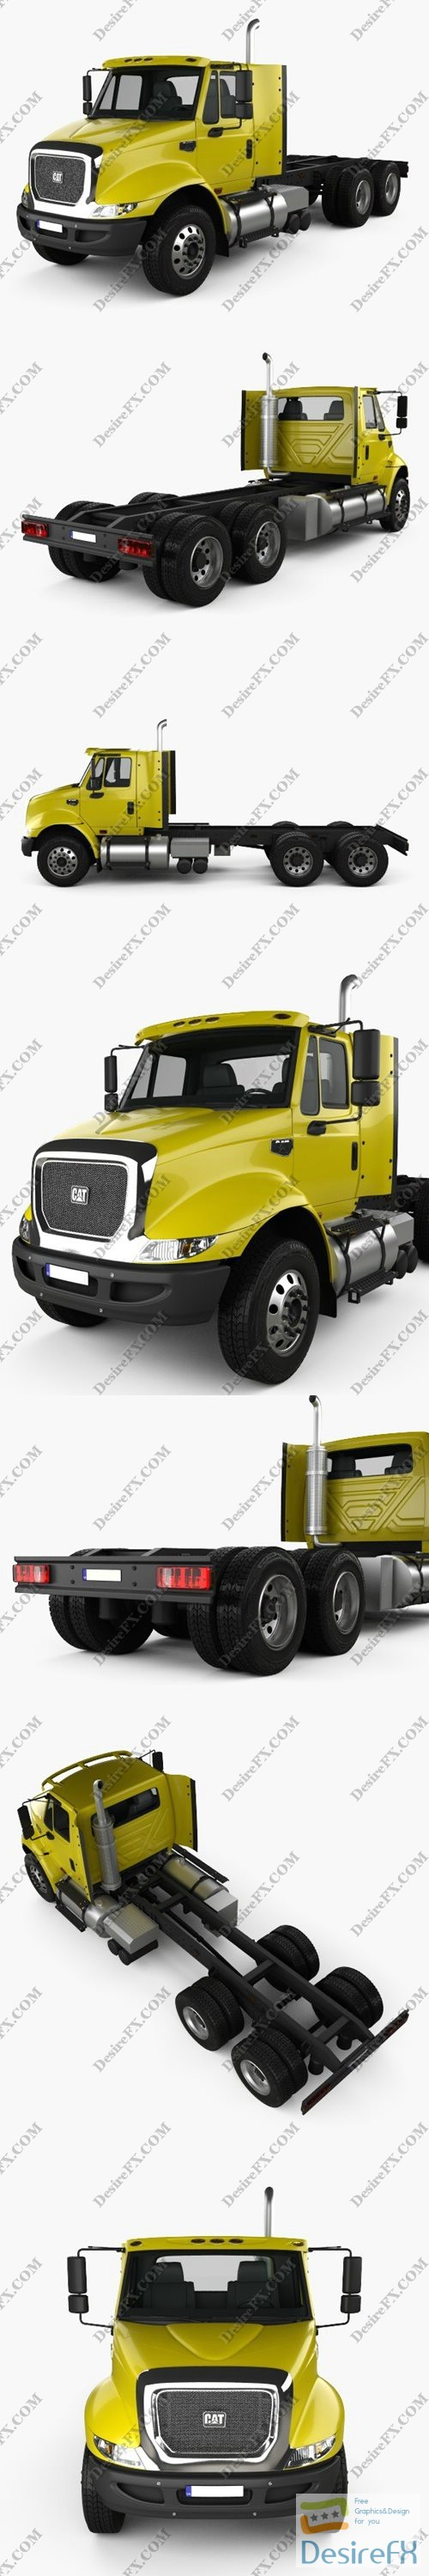 3d-models - Caterpillar CT610 Chassis Truck 2011 3D Model